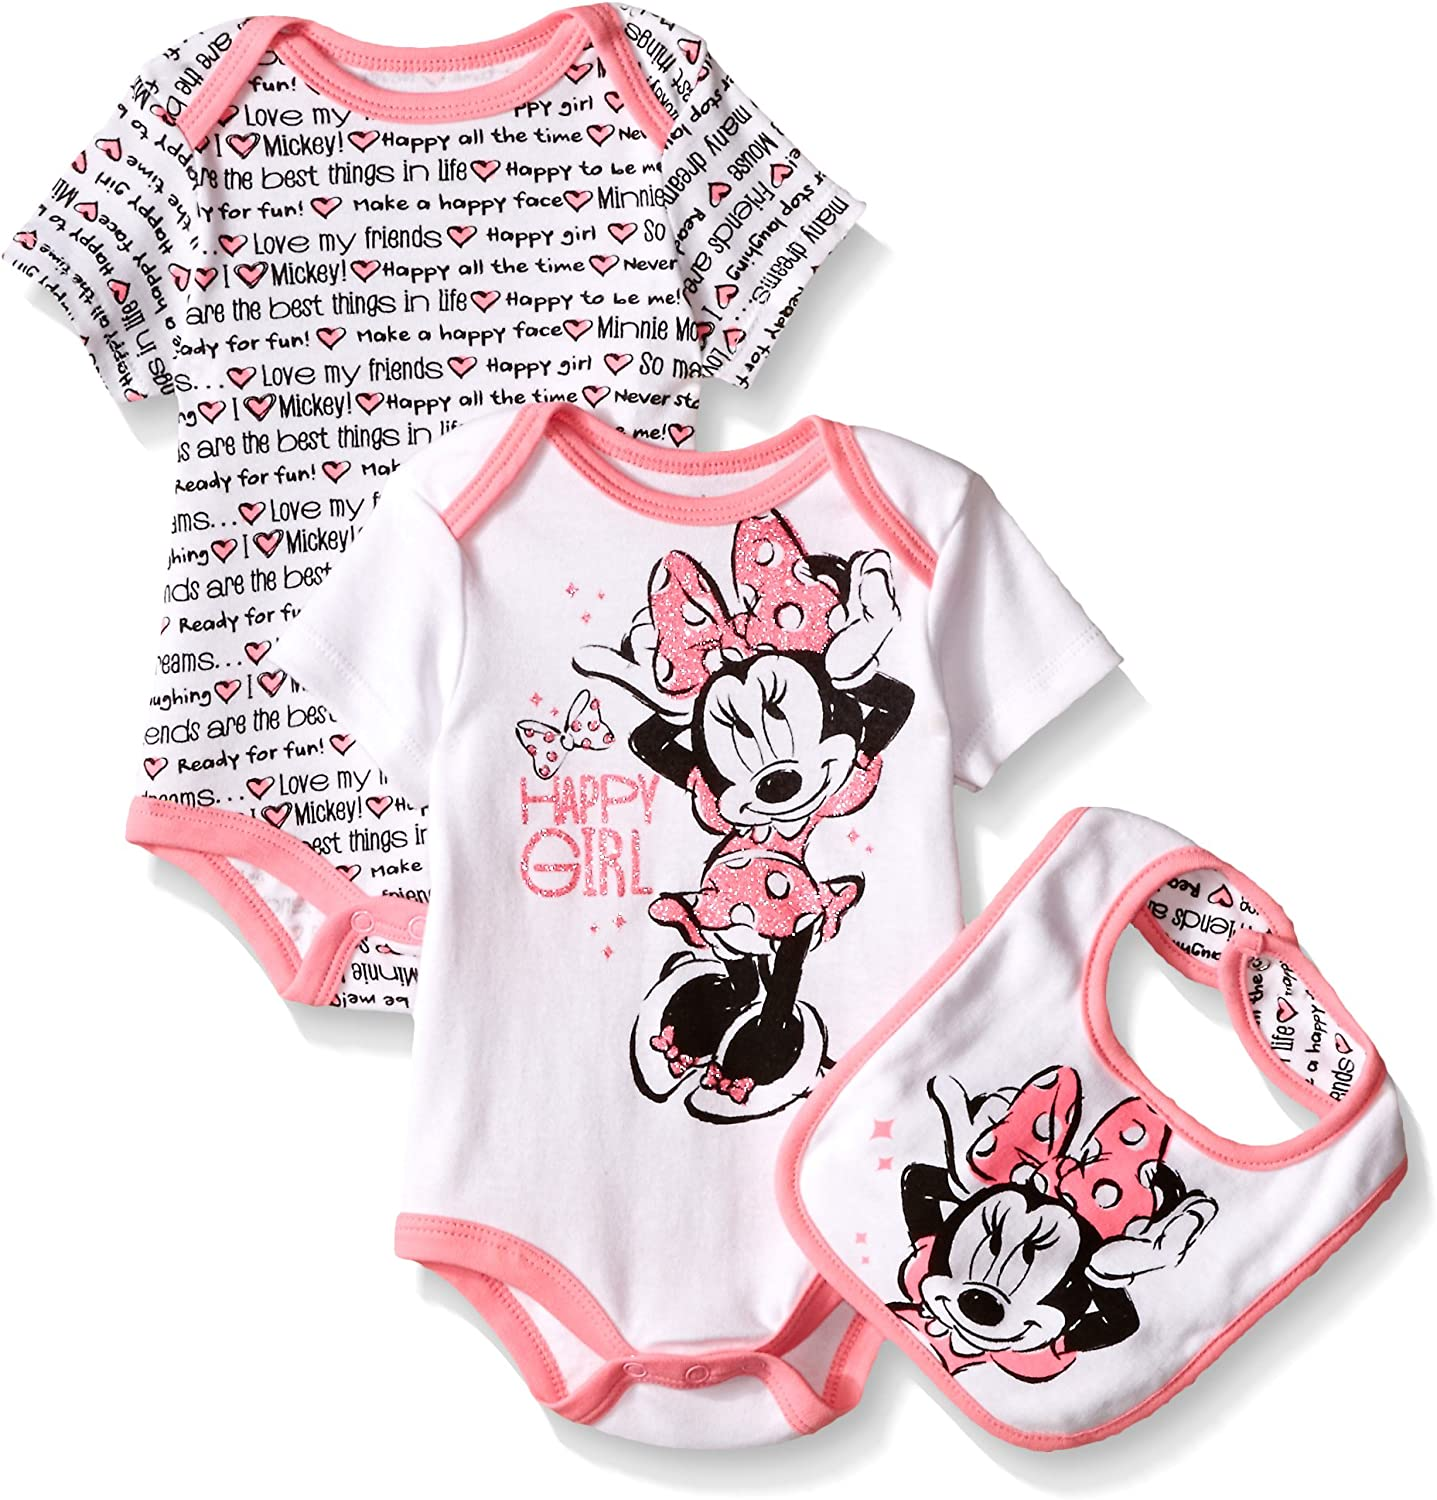 Cute Baby Bodysuit Mickey Mouse /& Minnie Mouse Baby Bodysuit Minnie Mouse Bodysuit Mickey Mouse Bodysuit Made with Sublimation